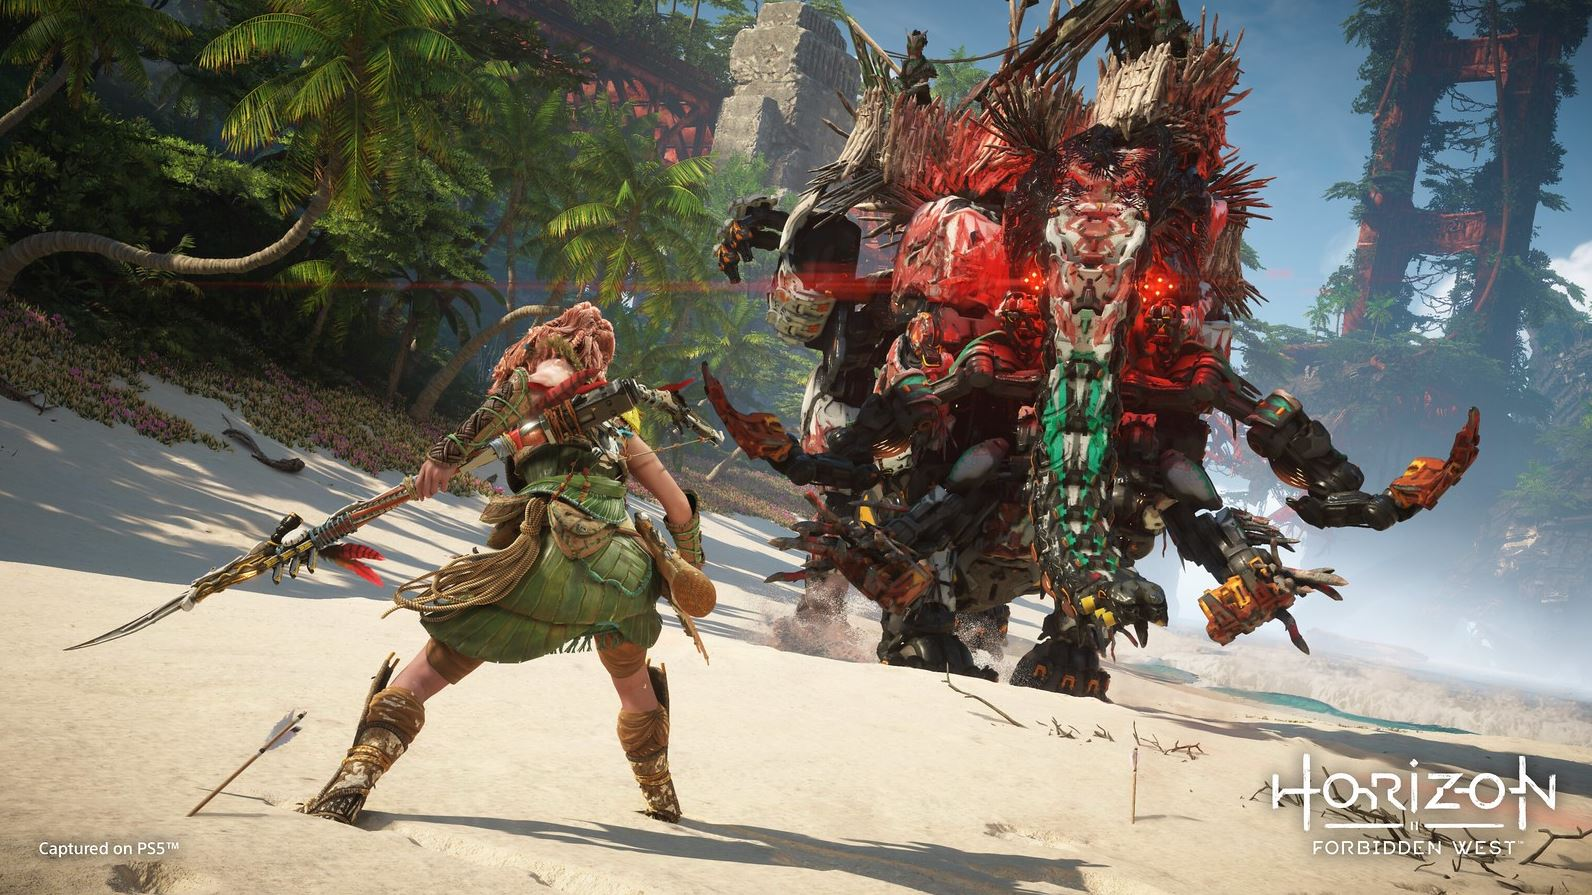 new-horizon-forbidden-west-screenshots-are-as-colorful-as-they-are-beautiful-4